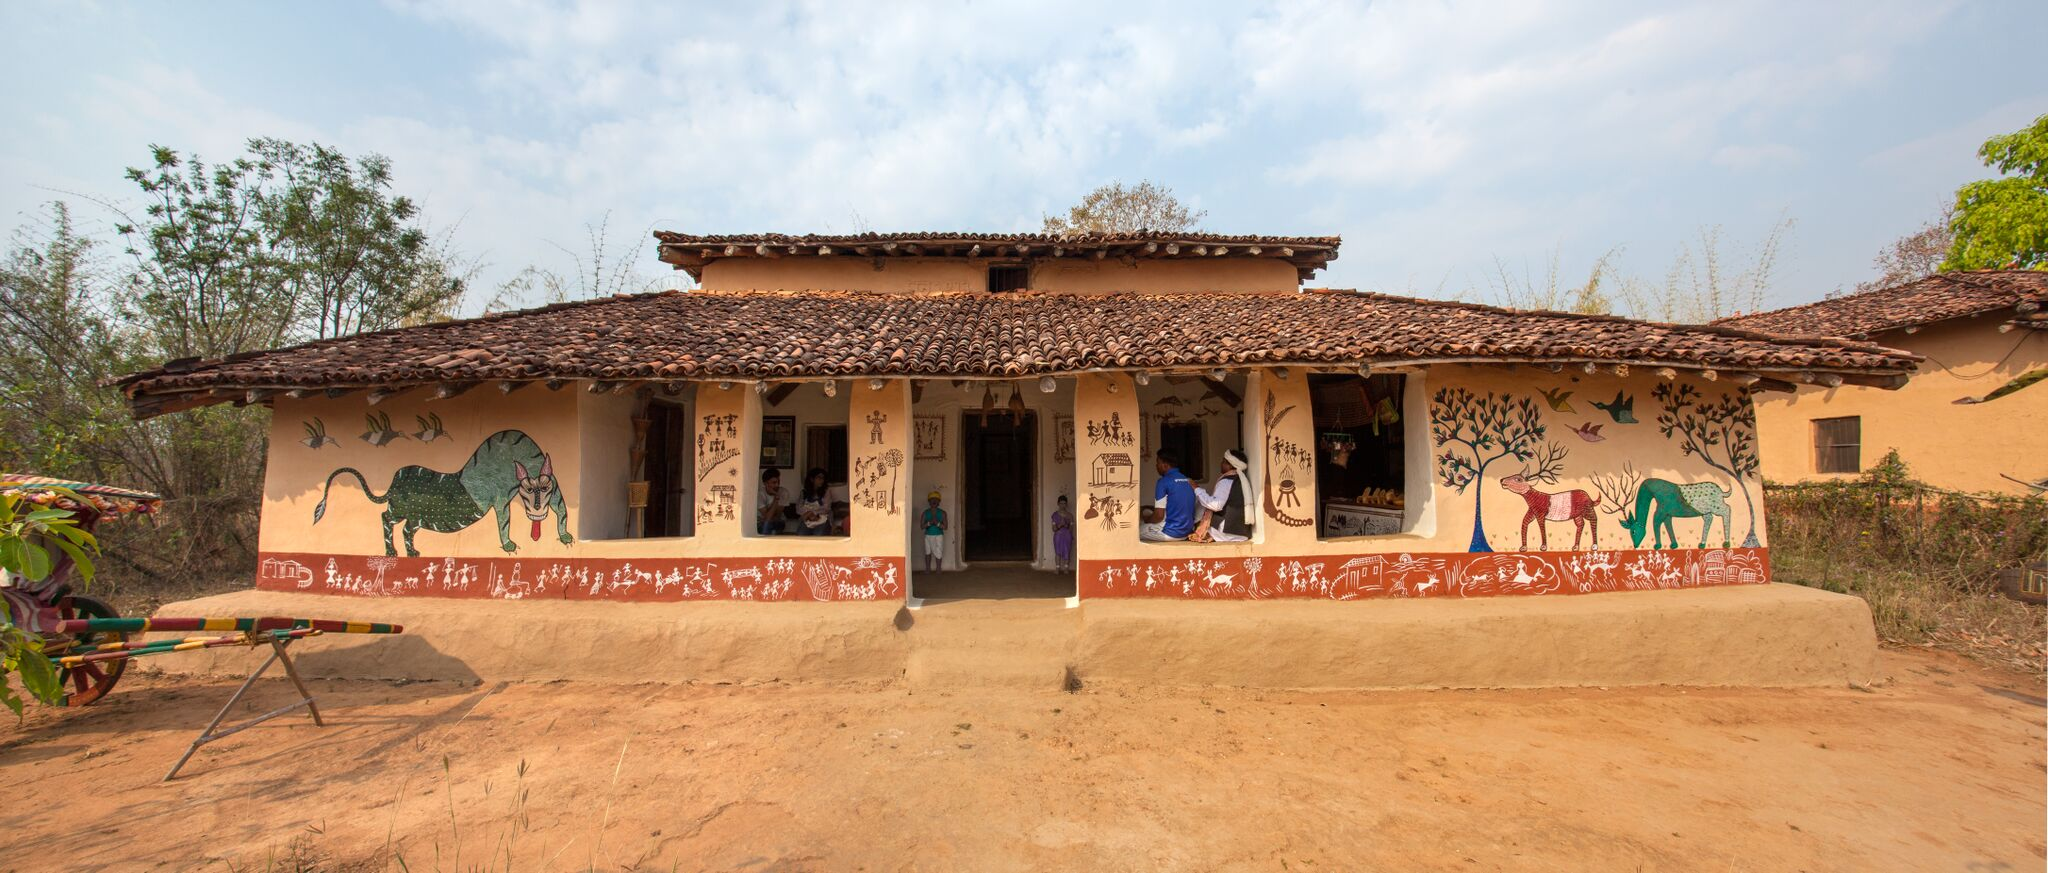 The Corbett Foundation (TFC) has built a tribal museum at Kanha to share the history and culture of local tribes.  PHOTO: Byron Flateland